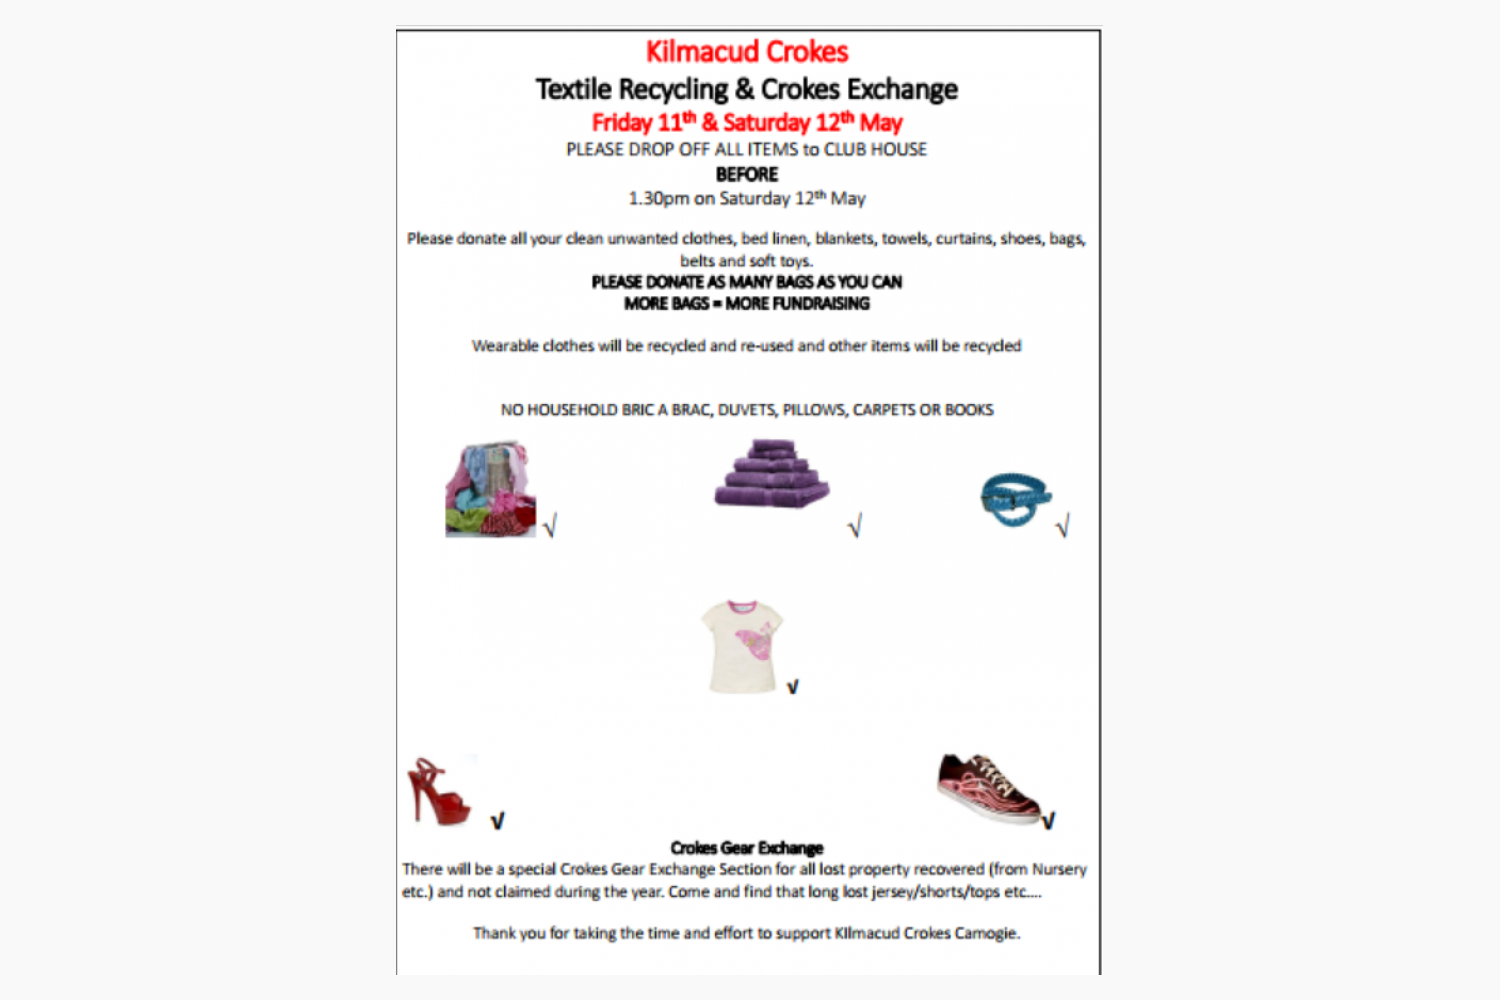 Kilmacud Crokes Textile Recycling & Crokes Exchange  Friday 11th & Saturday 12th May